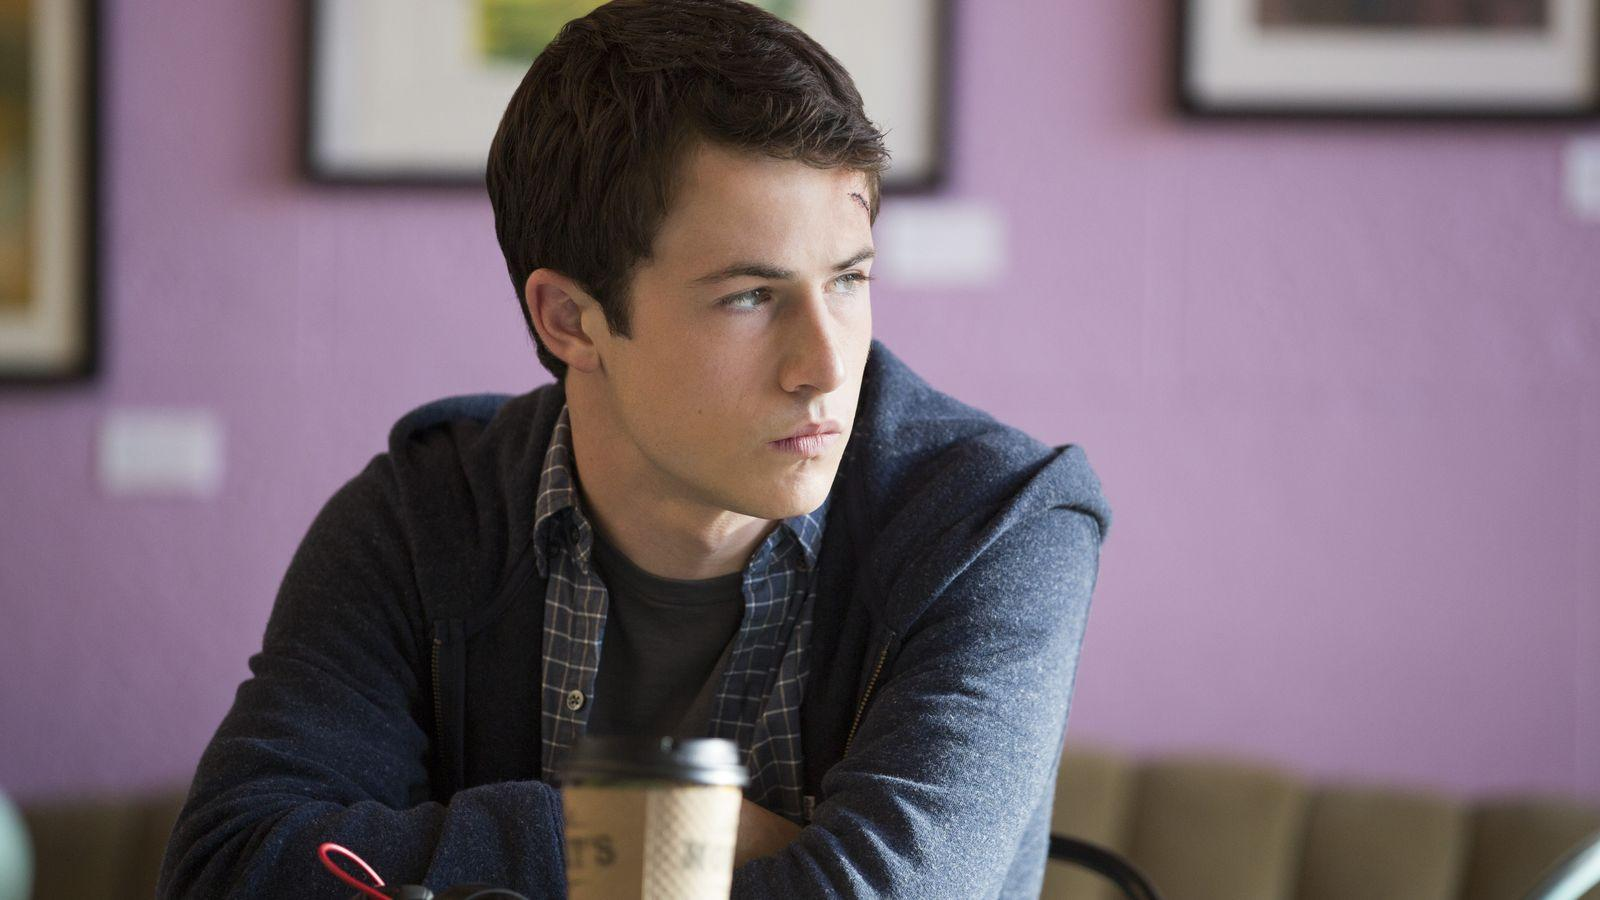 '13 Reasons Why' Season 2 Spoilers: 7 New Characters To Be Introduced